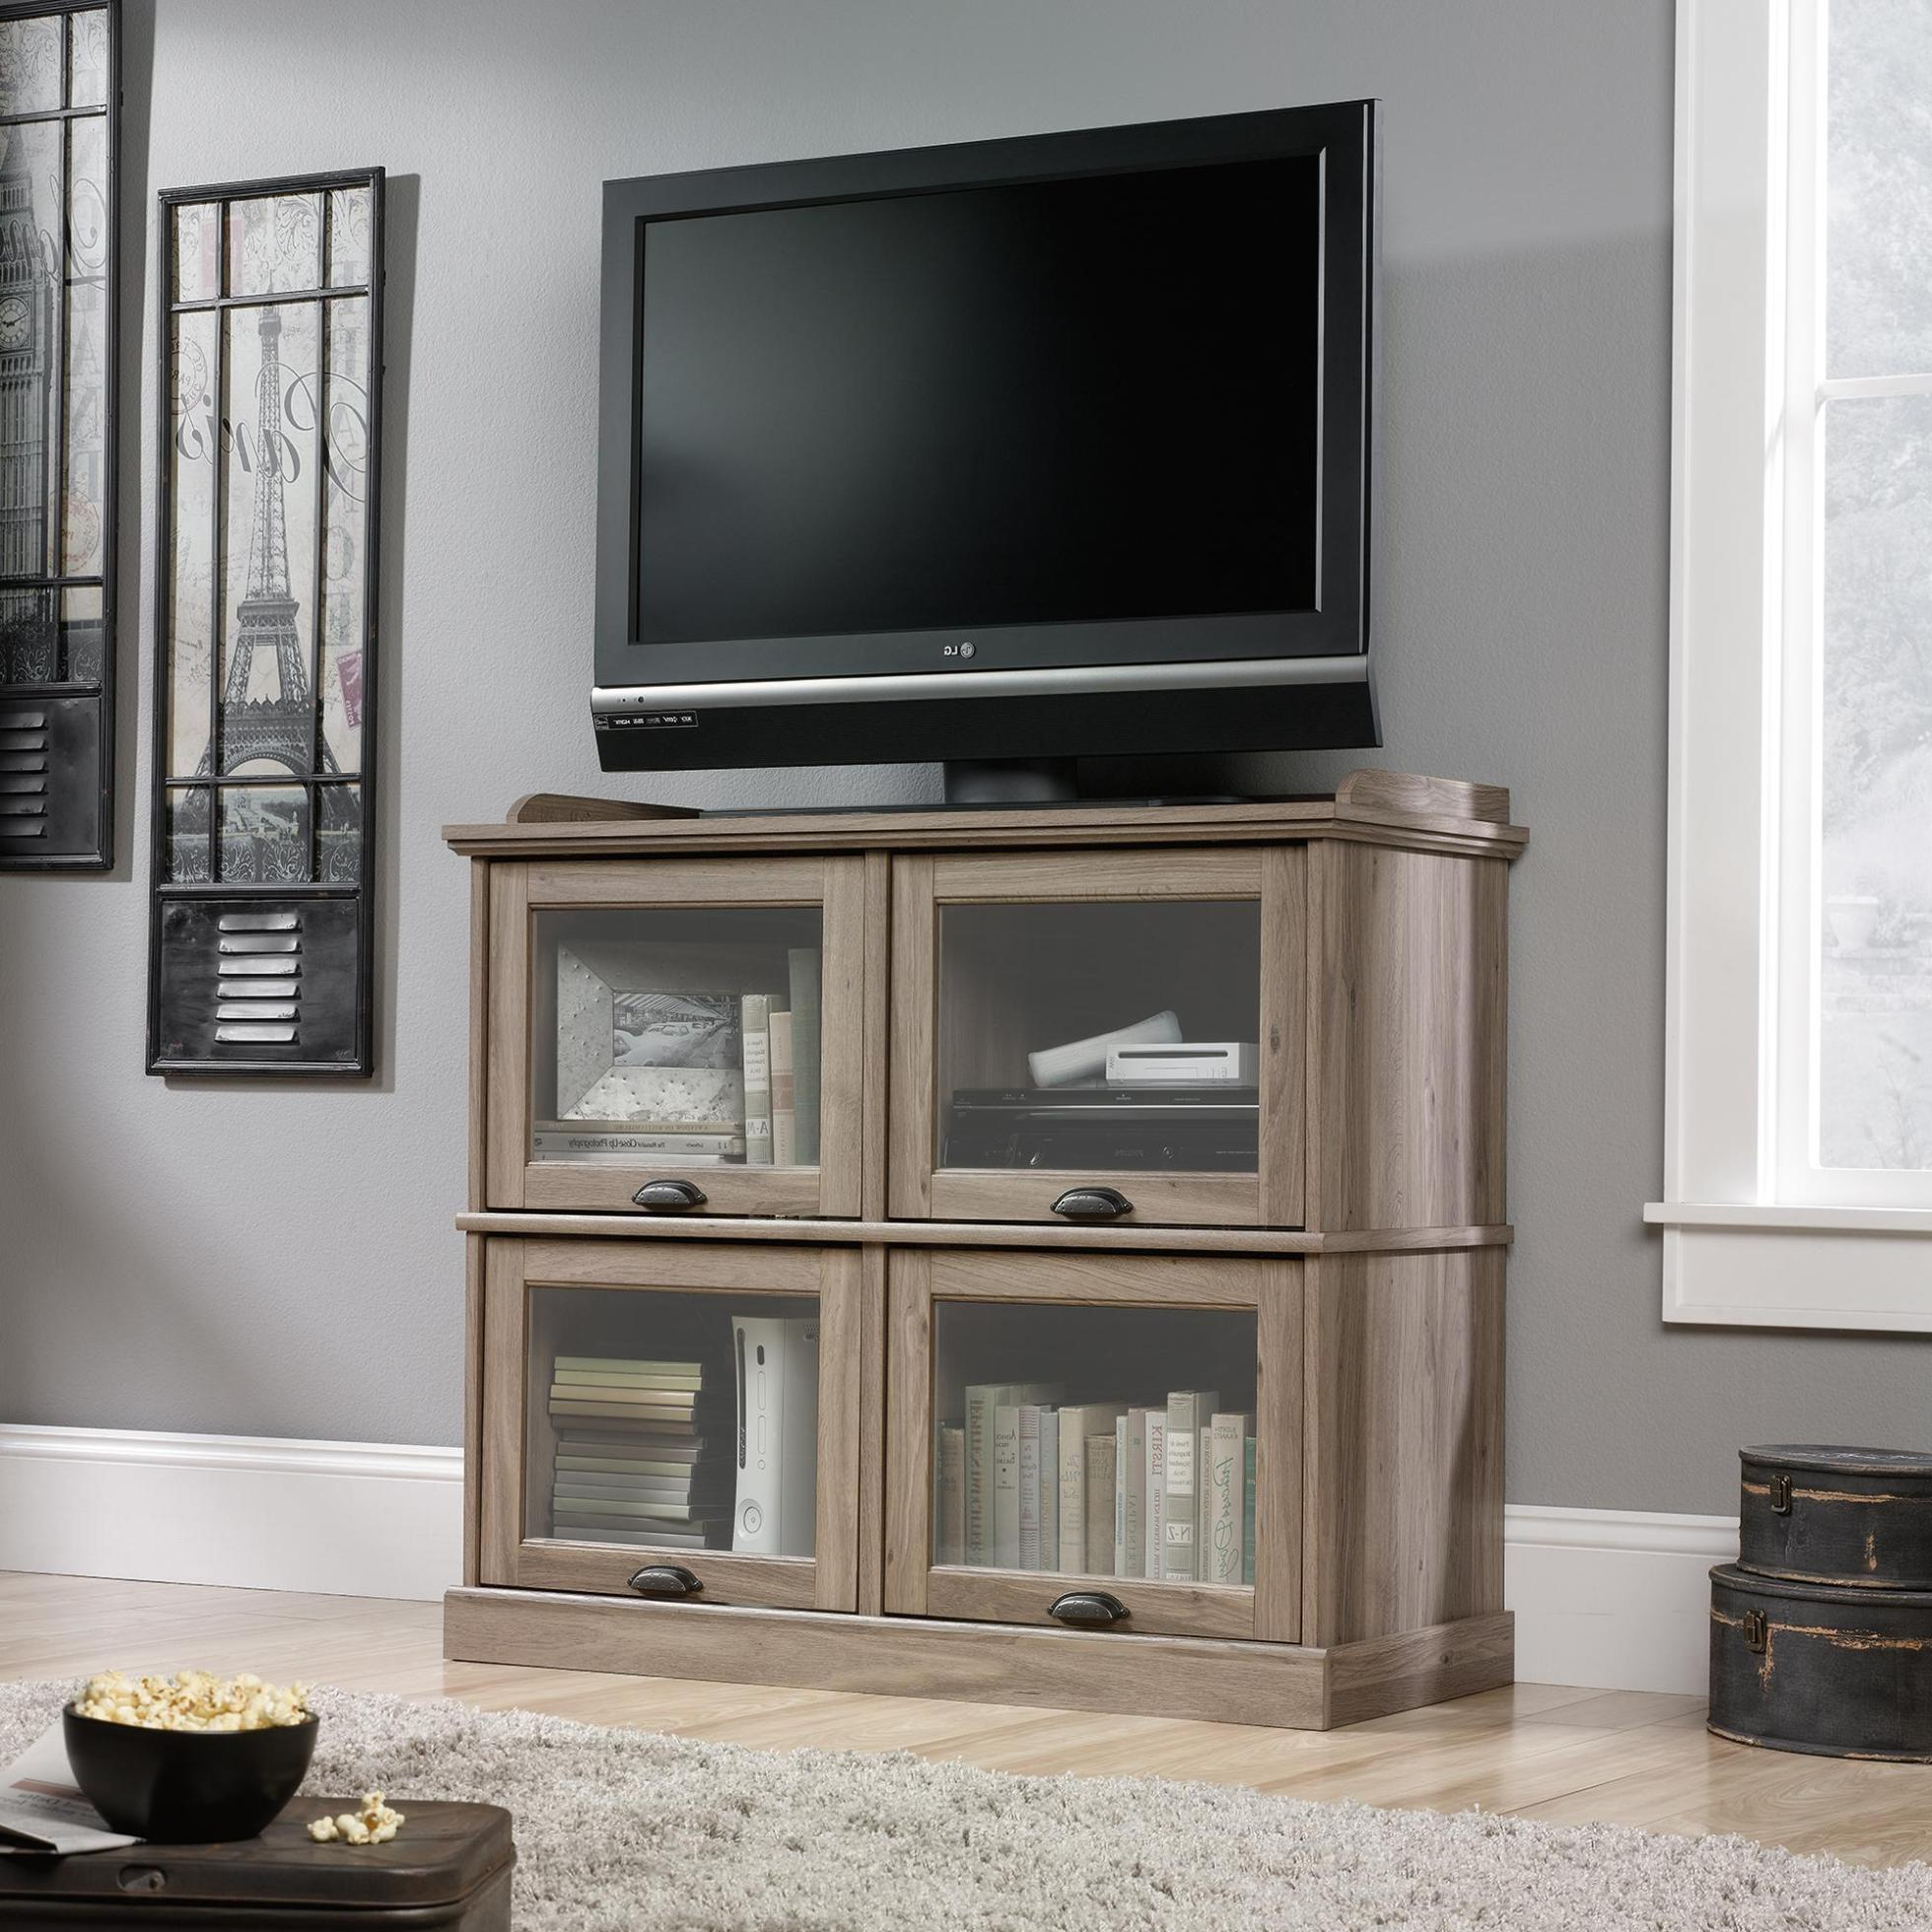 Tv Stands: Brandnew 2017 Tall Tv Stands For Flat Screens Images 40 In Famous Tall Tv Stands For Flat Screen (View 9 of 20)